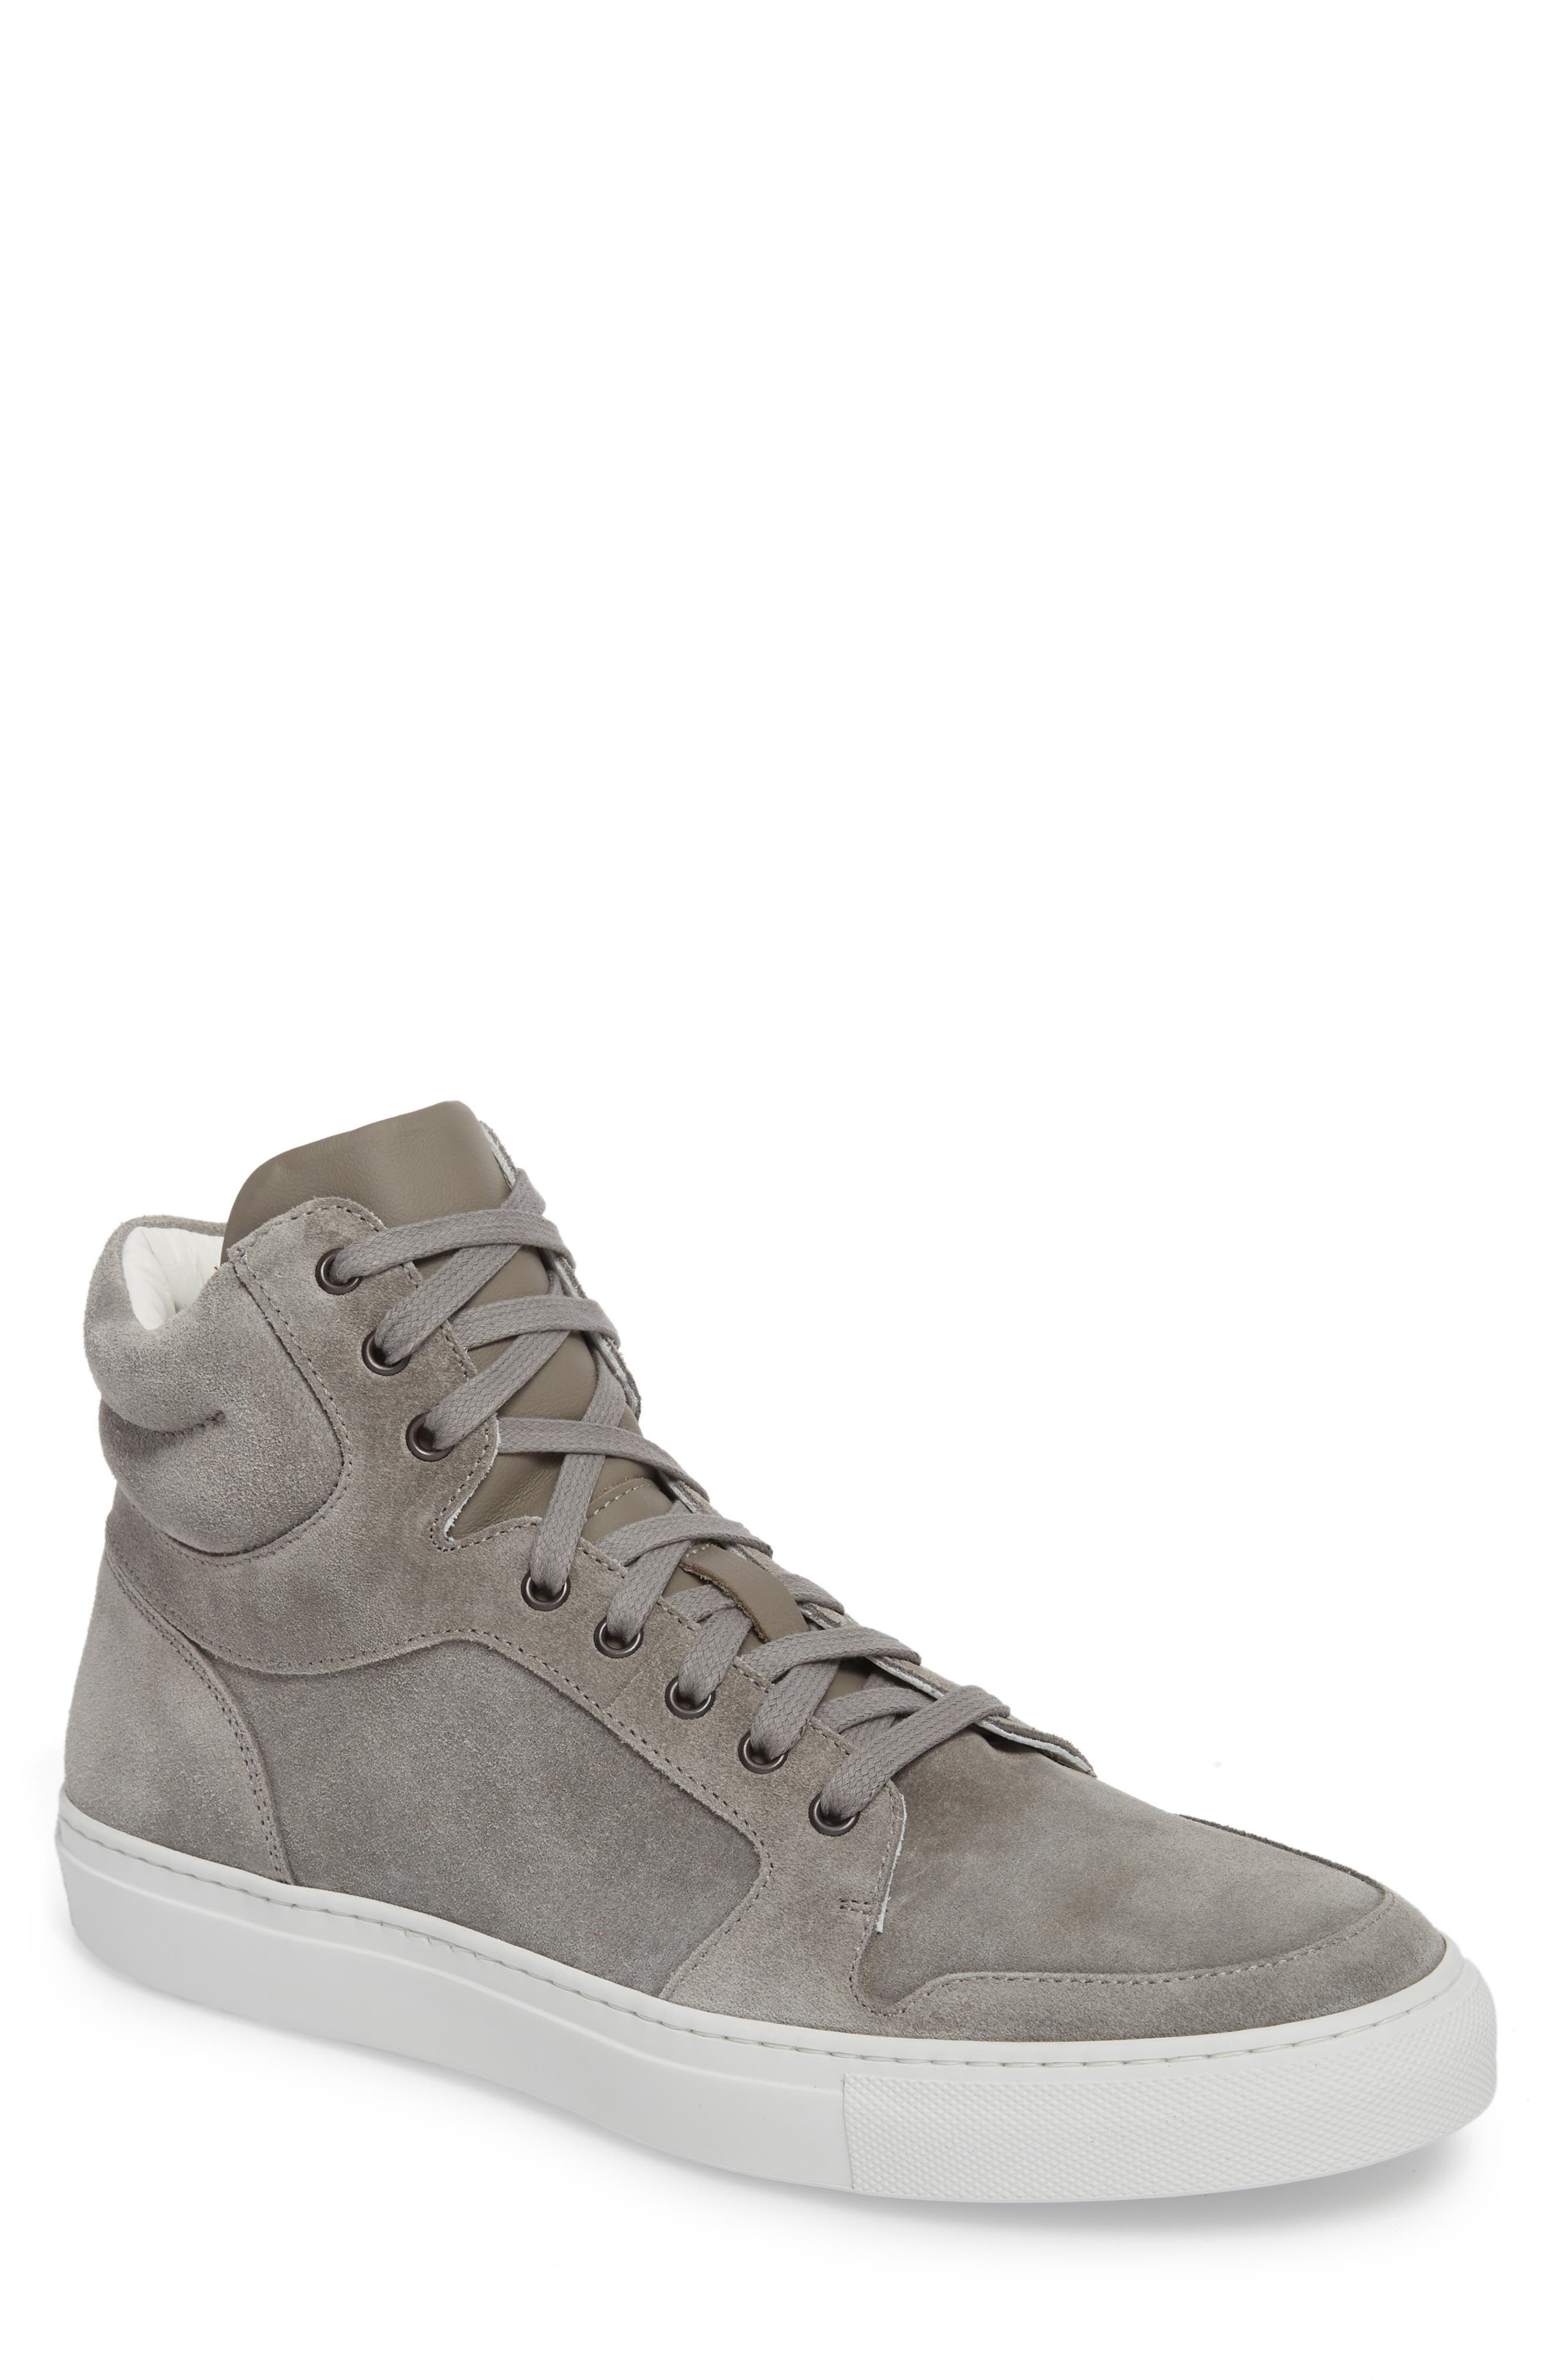 Belmont High Top Sneaker,                         Main,                         color, 034